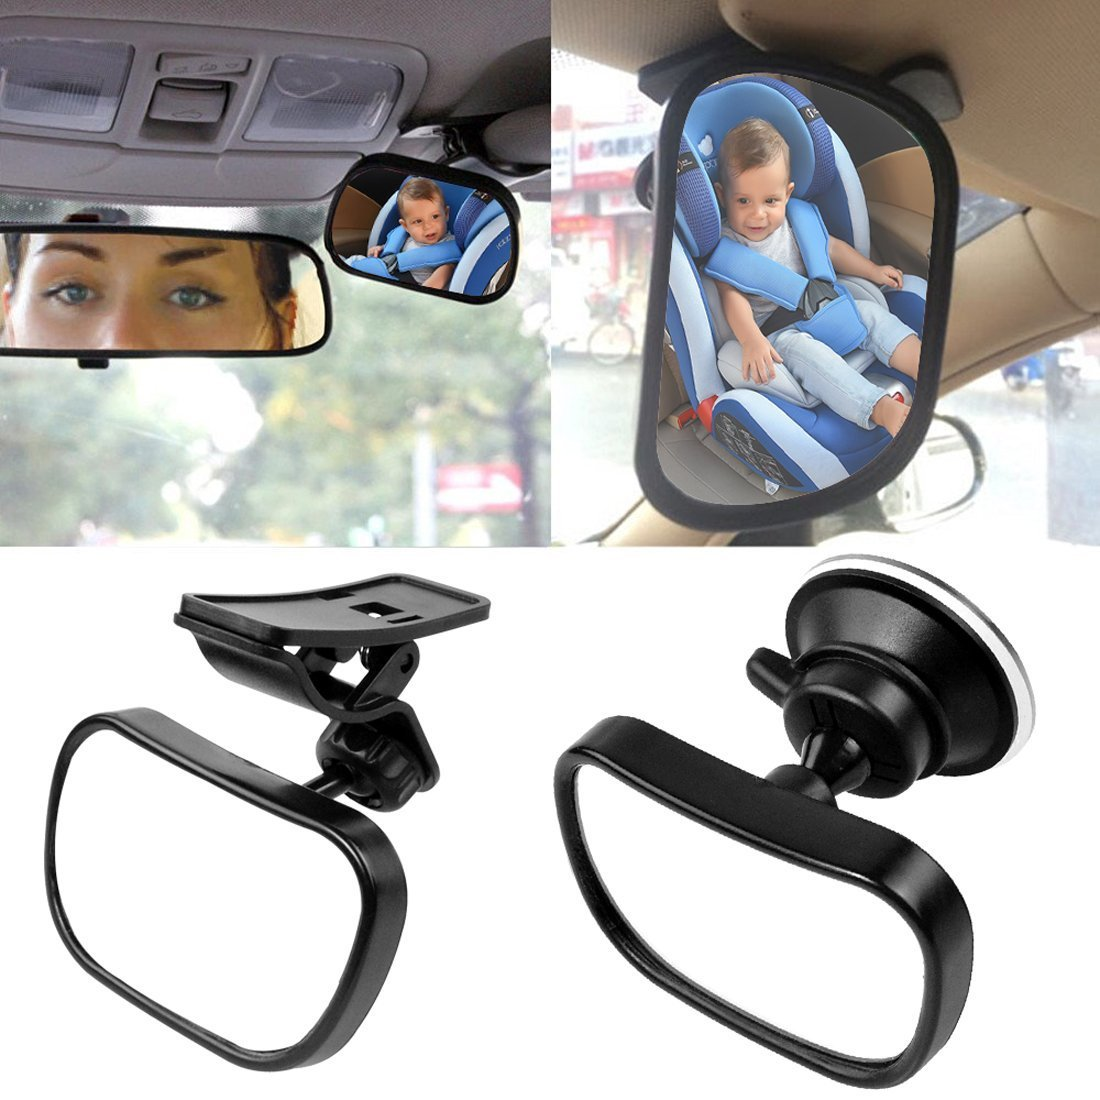 KOBWA Baby Car Mirror Rear Facing - View Infant/Toddler In Back Seat - Shatter-proof Safety - New Sucktion Cup on Windshield or Clip on Car Sun Visor 6025779565318